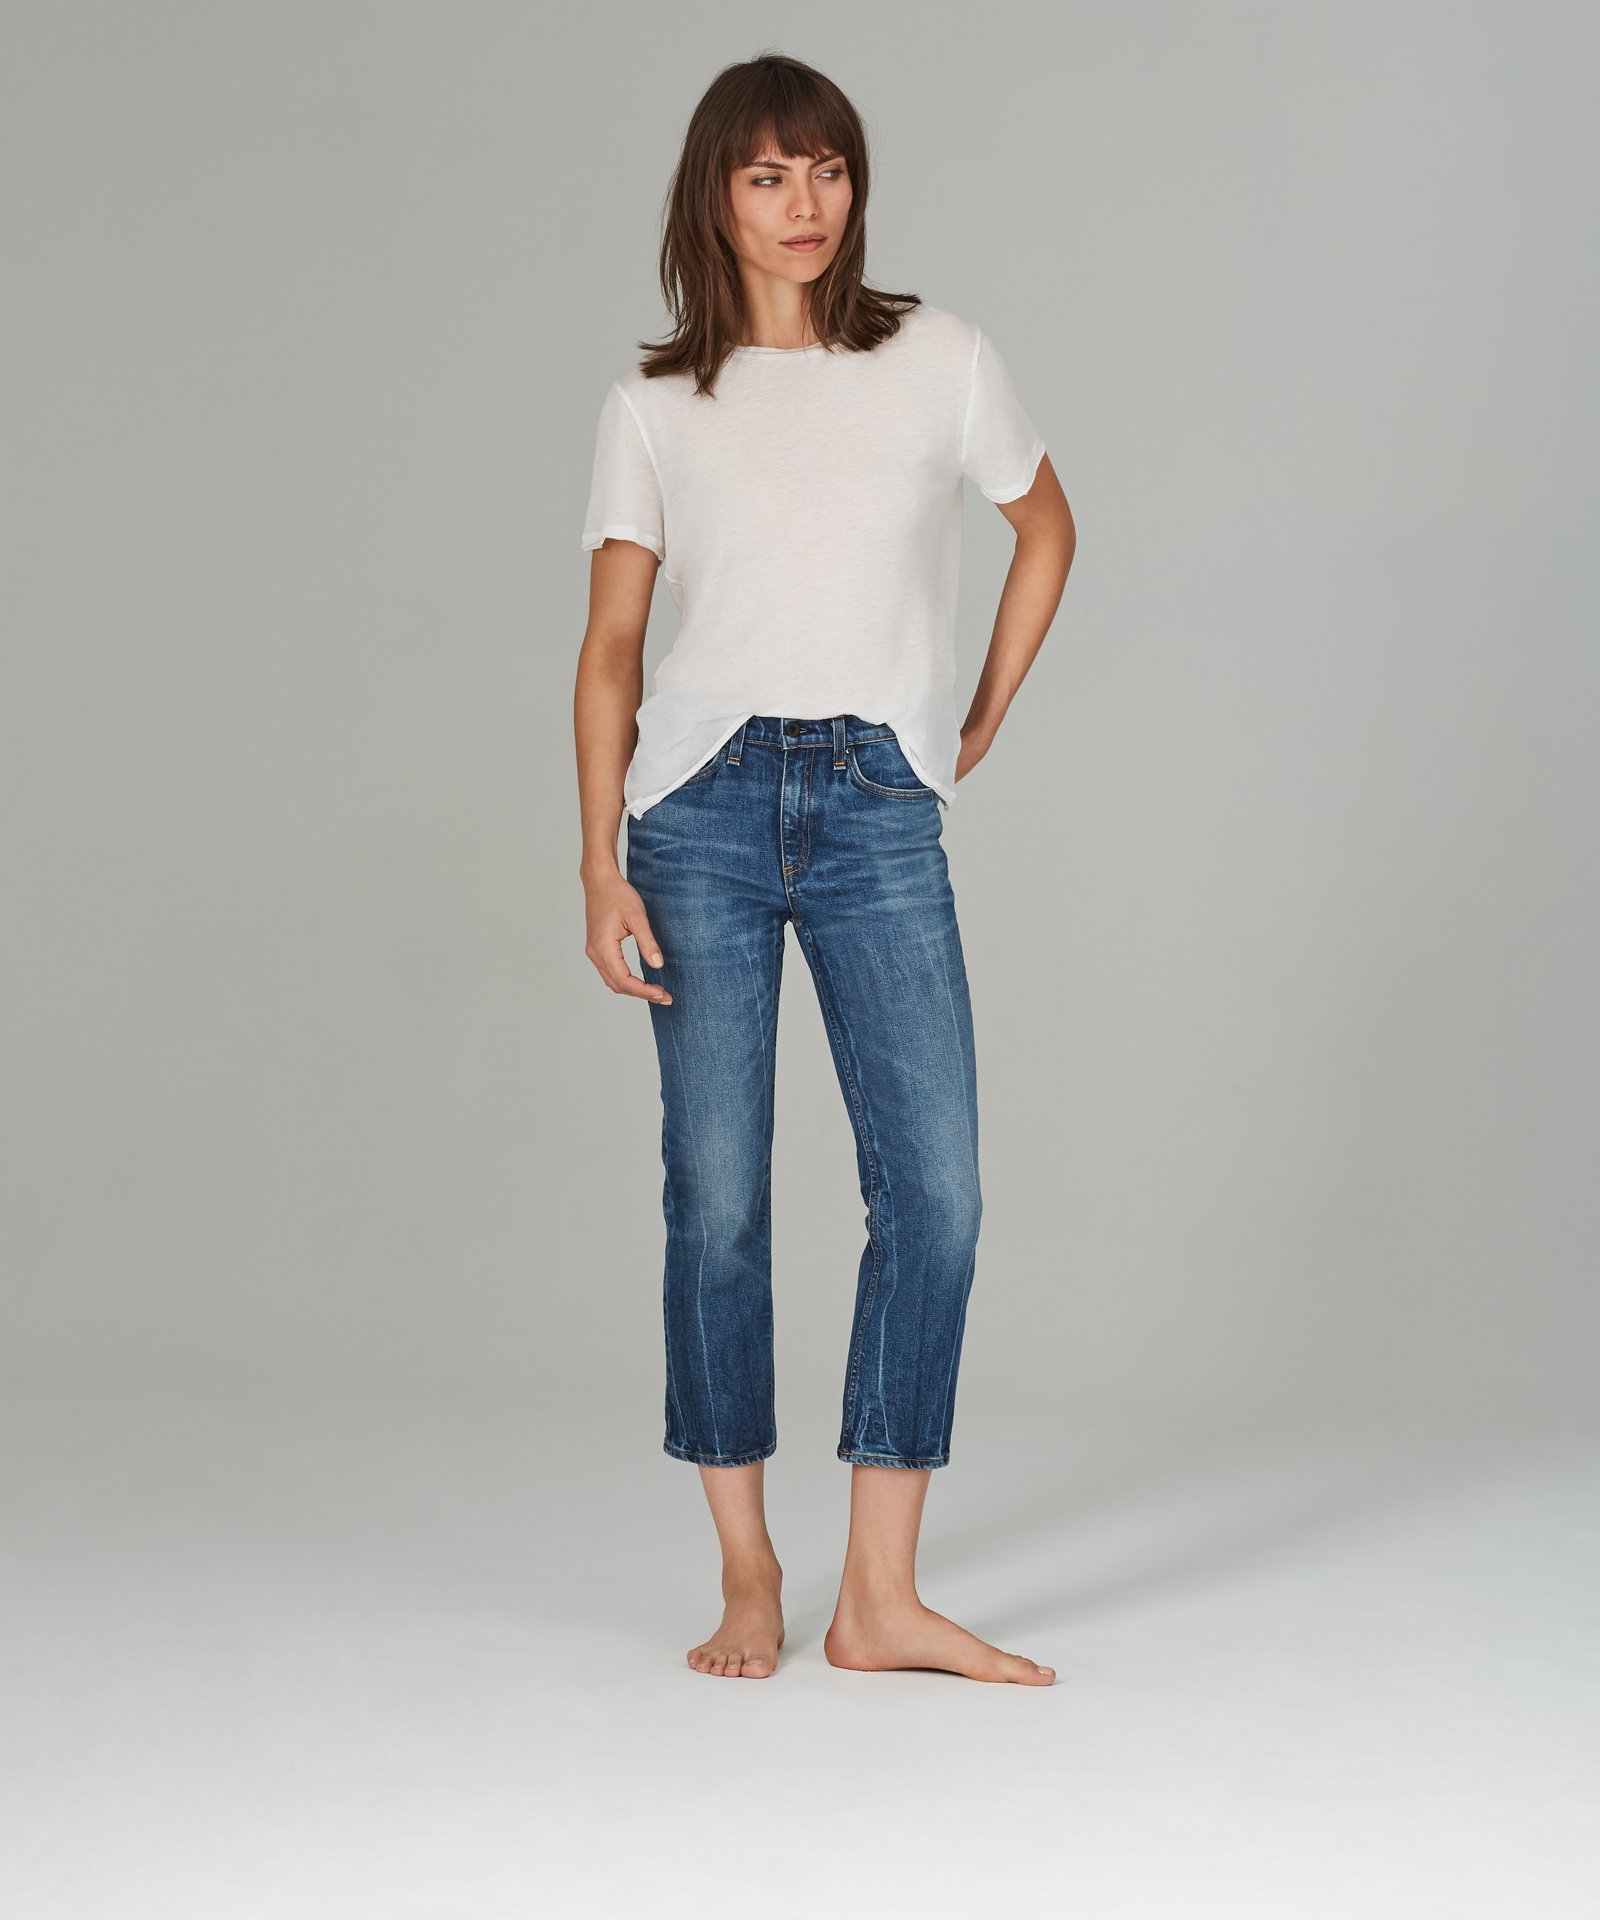 slim jeans, straight leg jeans, medium blue, marbled denim, cropped jeans, askk ny